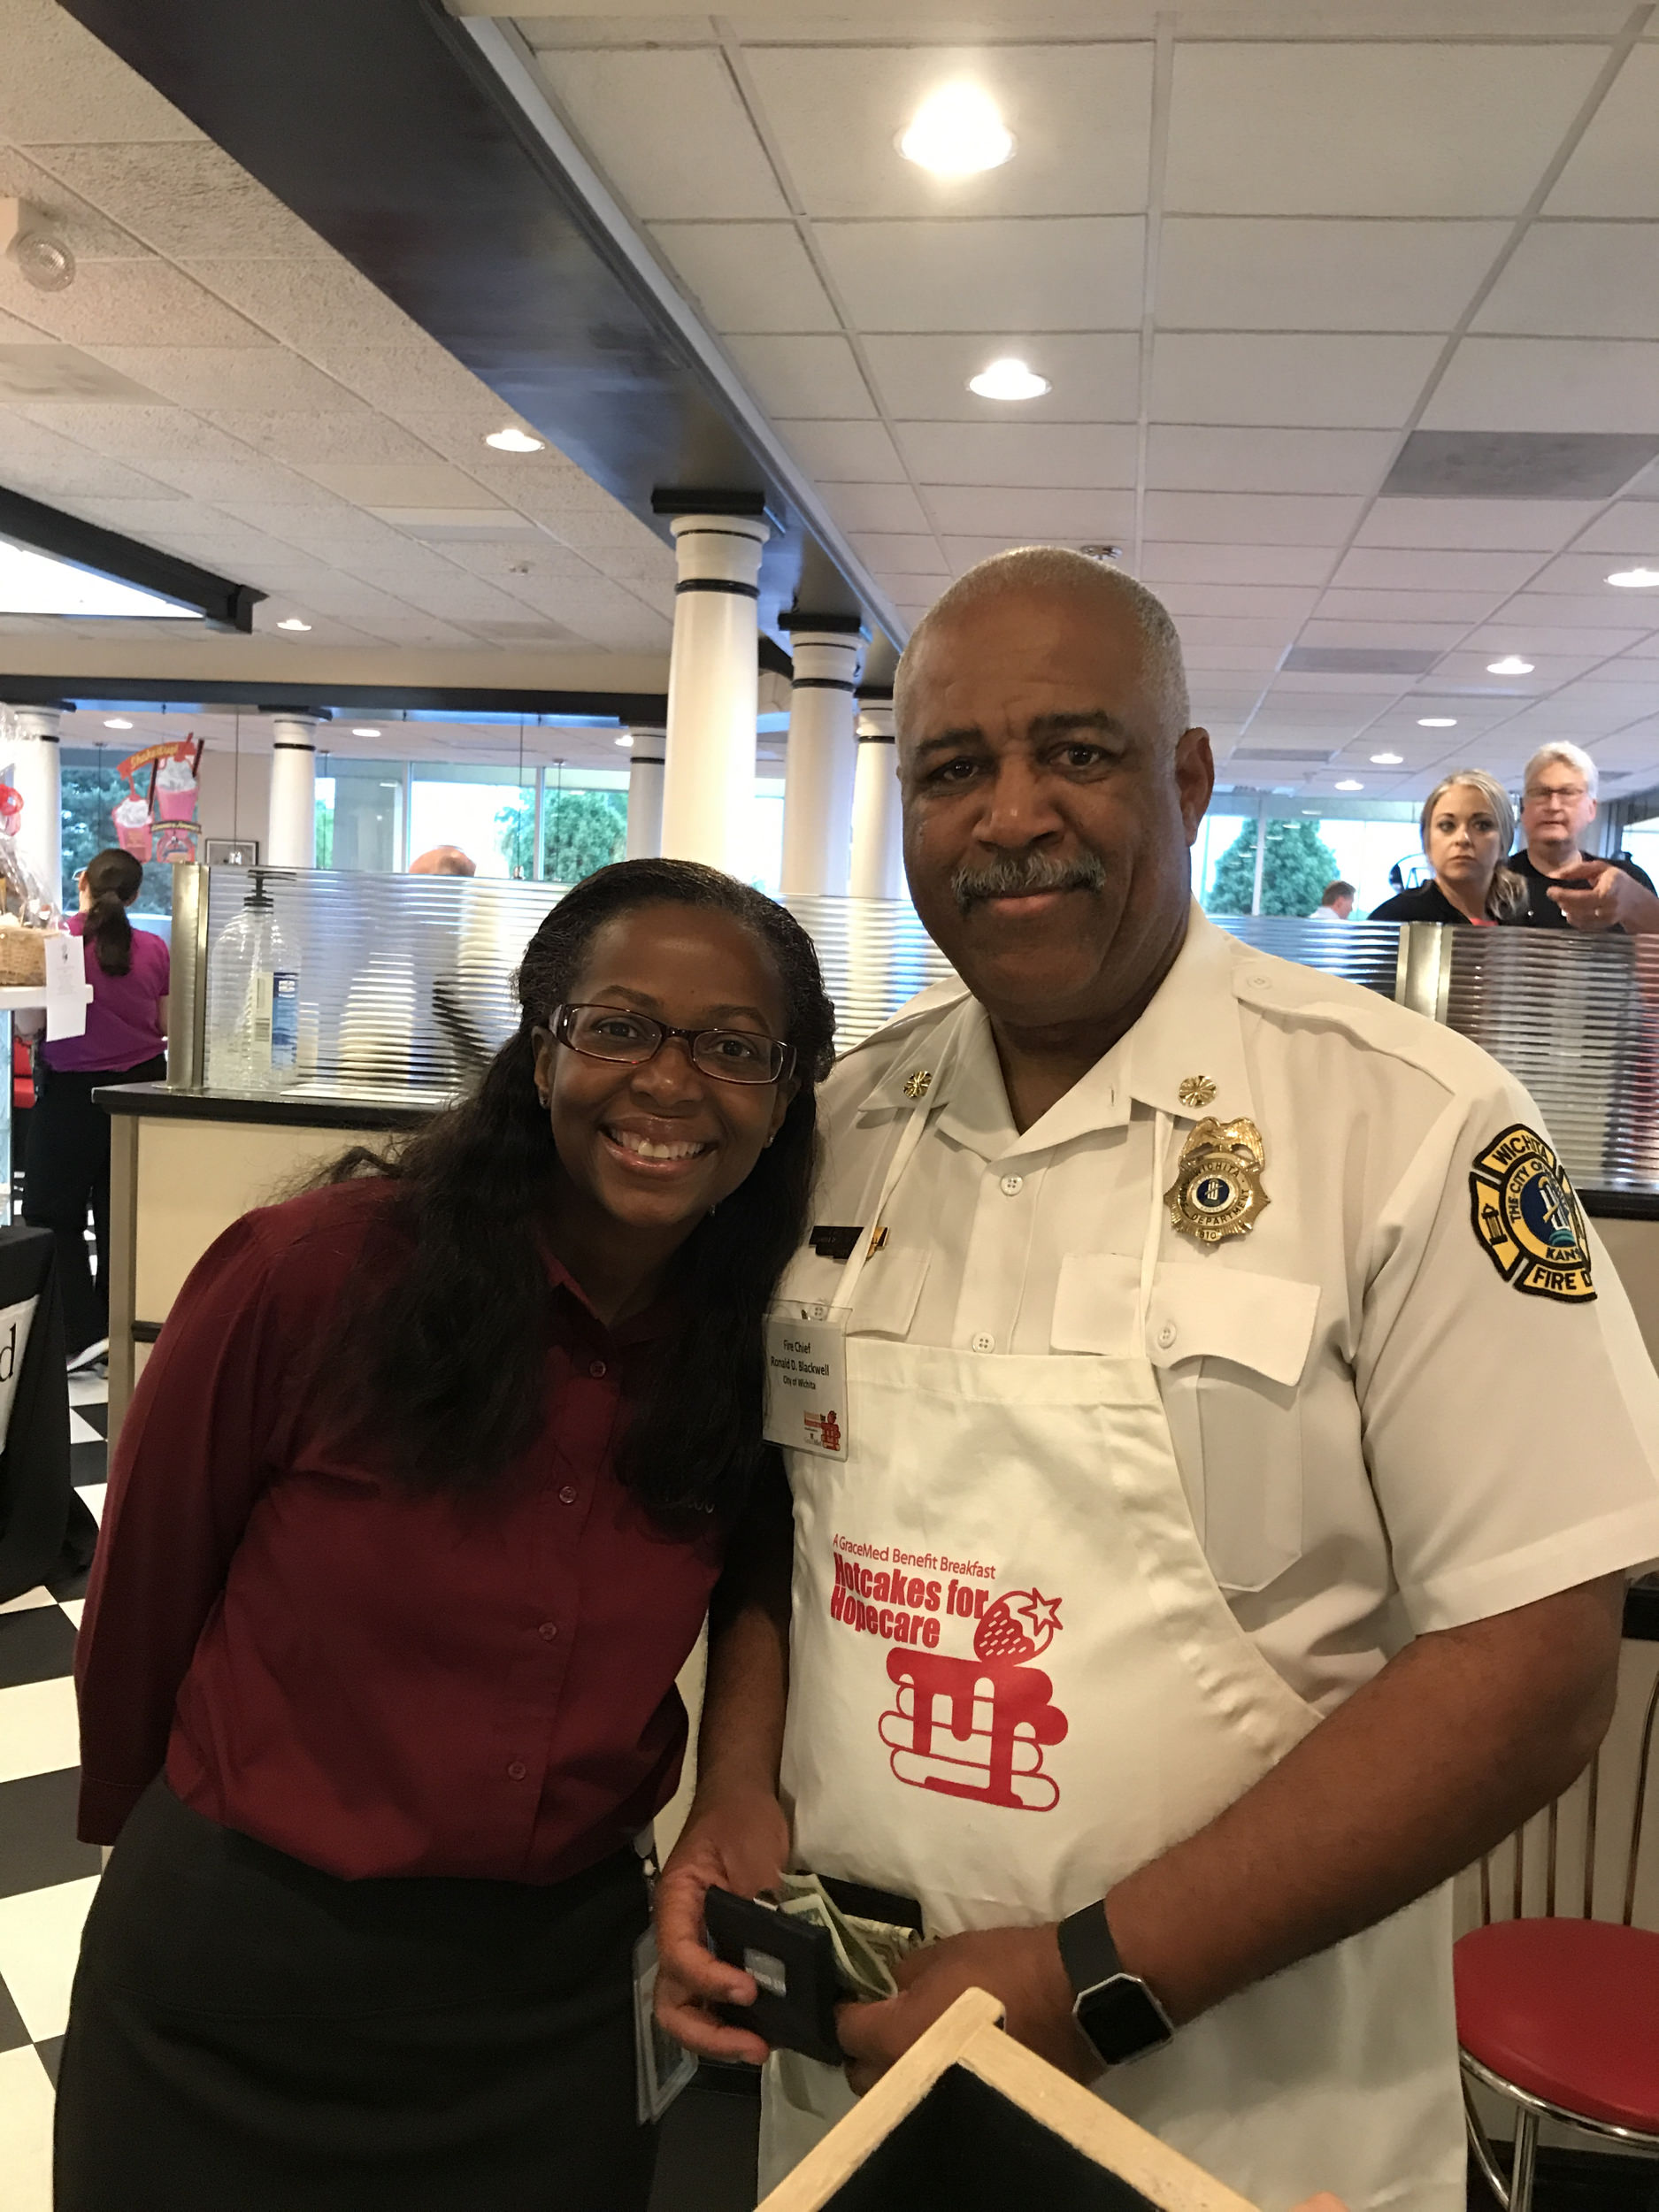 GraceMed Associate Executive Officer Venus Lee with Wichita Fire Chief Ron Blackwell